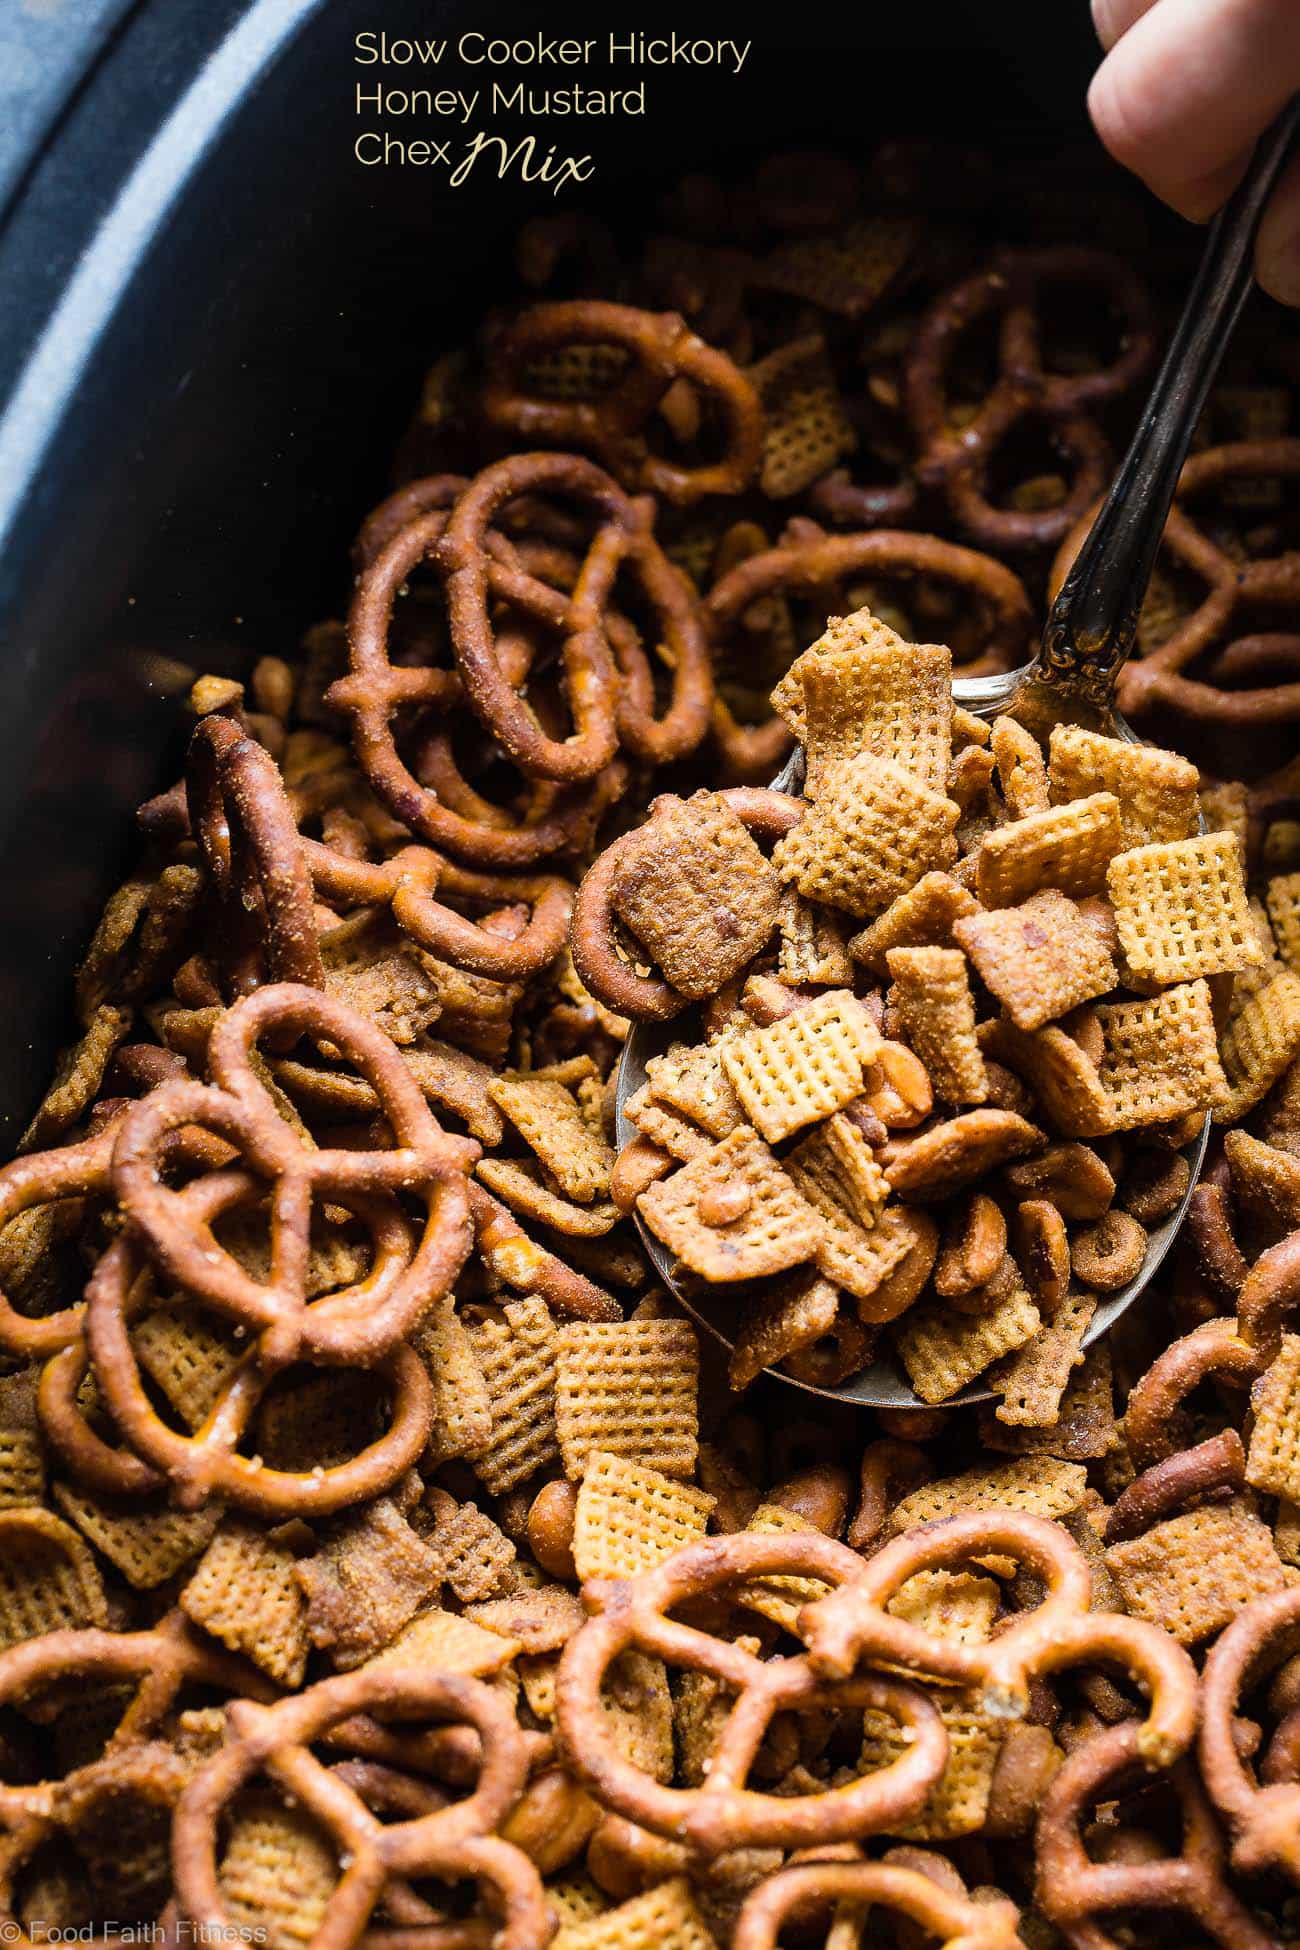 Hickory Honey Mustard Homemade Crock Pot Chex Mix - This dairy and gluten free Chex Mix is made in the slow cooker so it's super easy and hands off! It's got addicting smoky sweet flavors and is perfect for parties or movie nights! | Foodfaithfitness.com | @FoodFaithFit